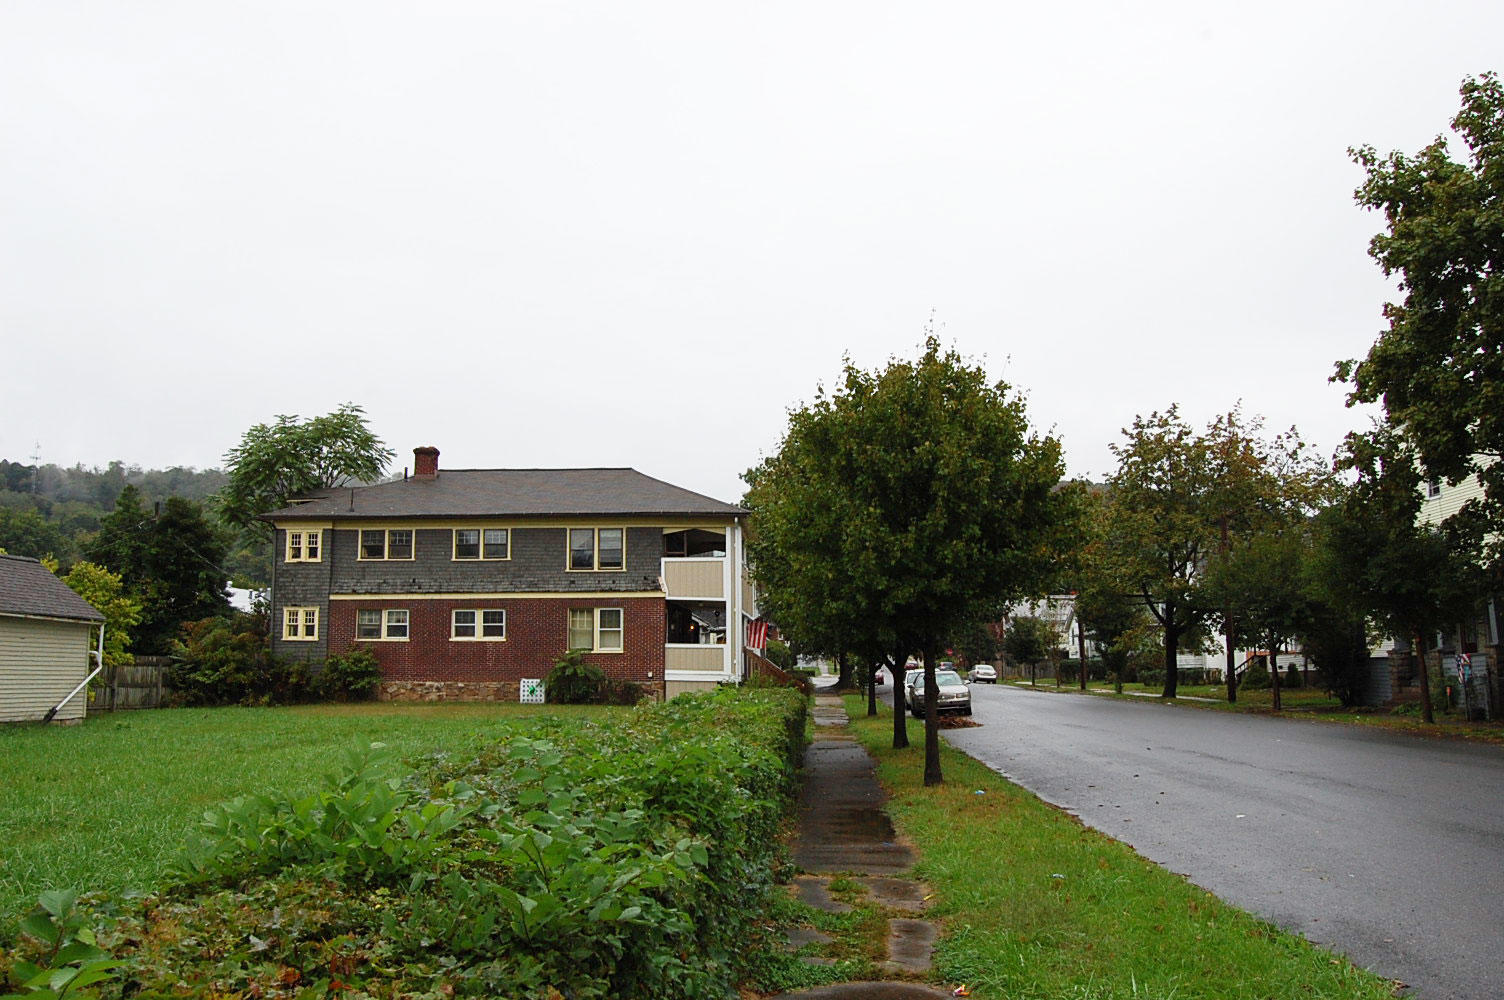 Williamsport Residential City Living - Image 4